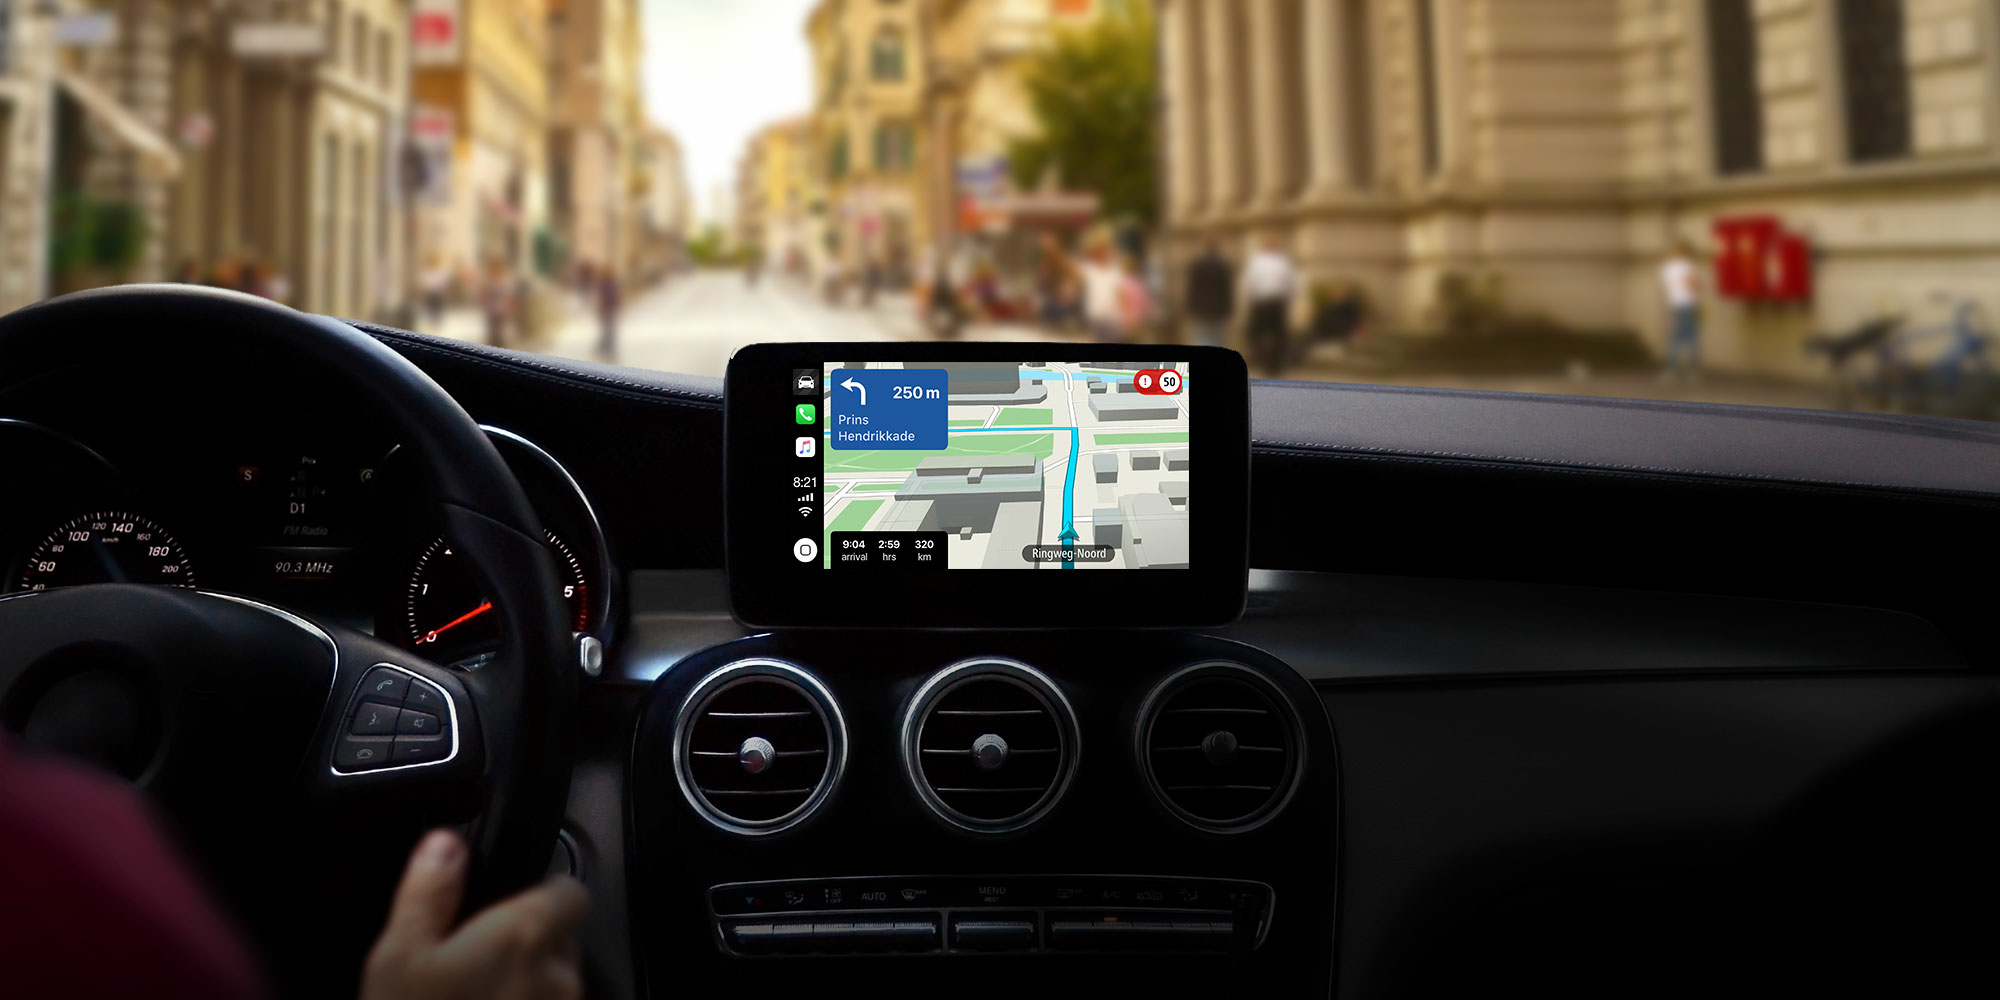 TomTom revamps navigation app with offline maps in CarPlay